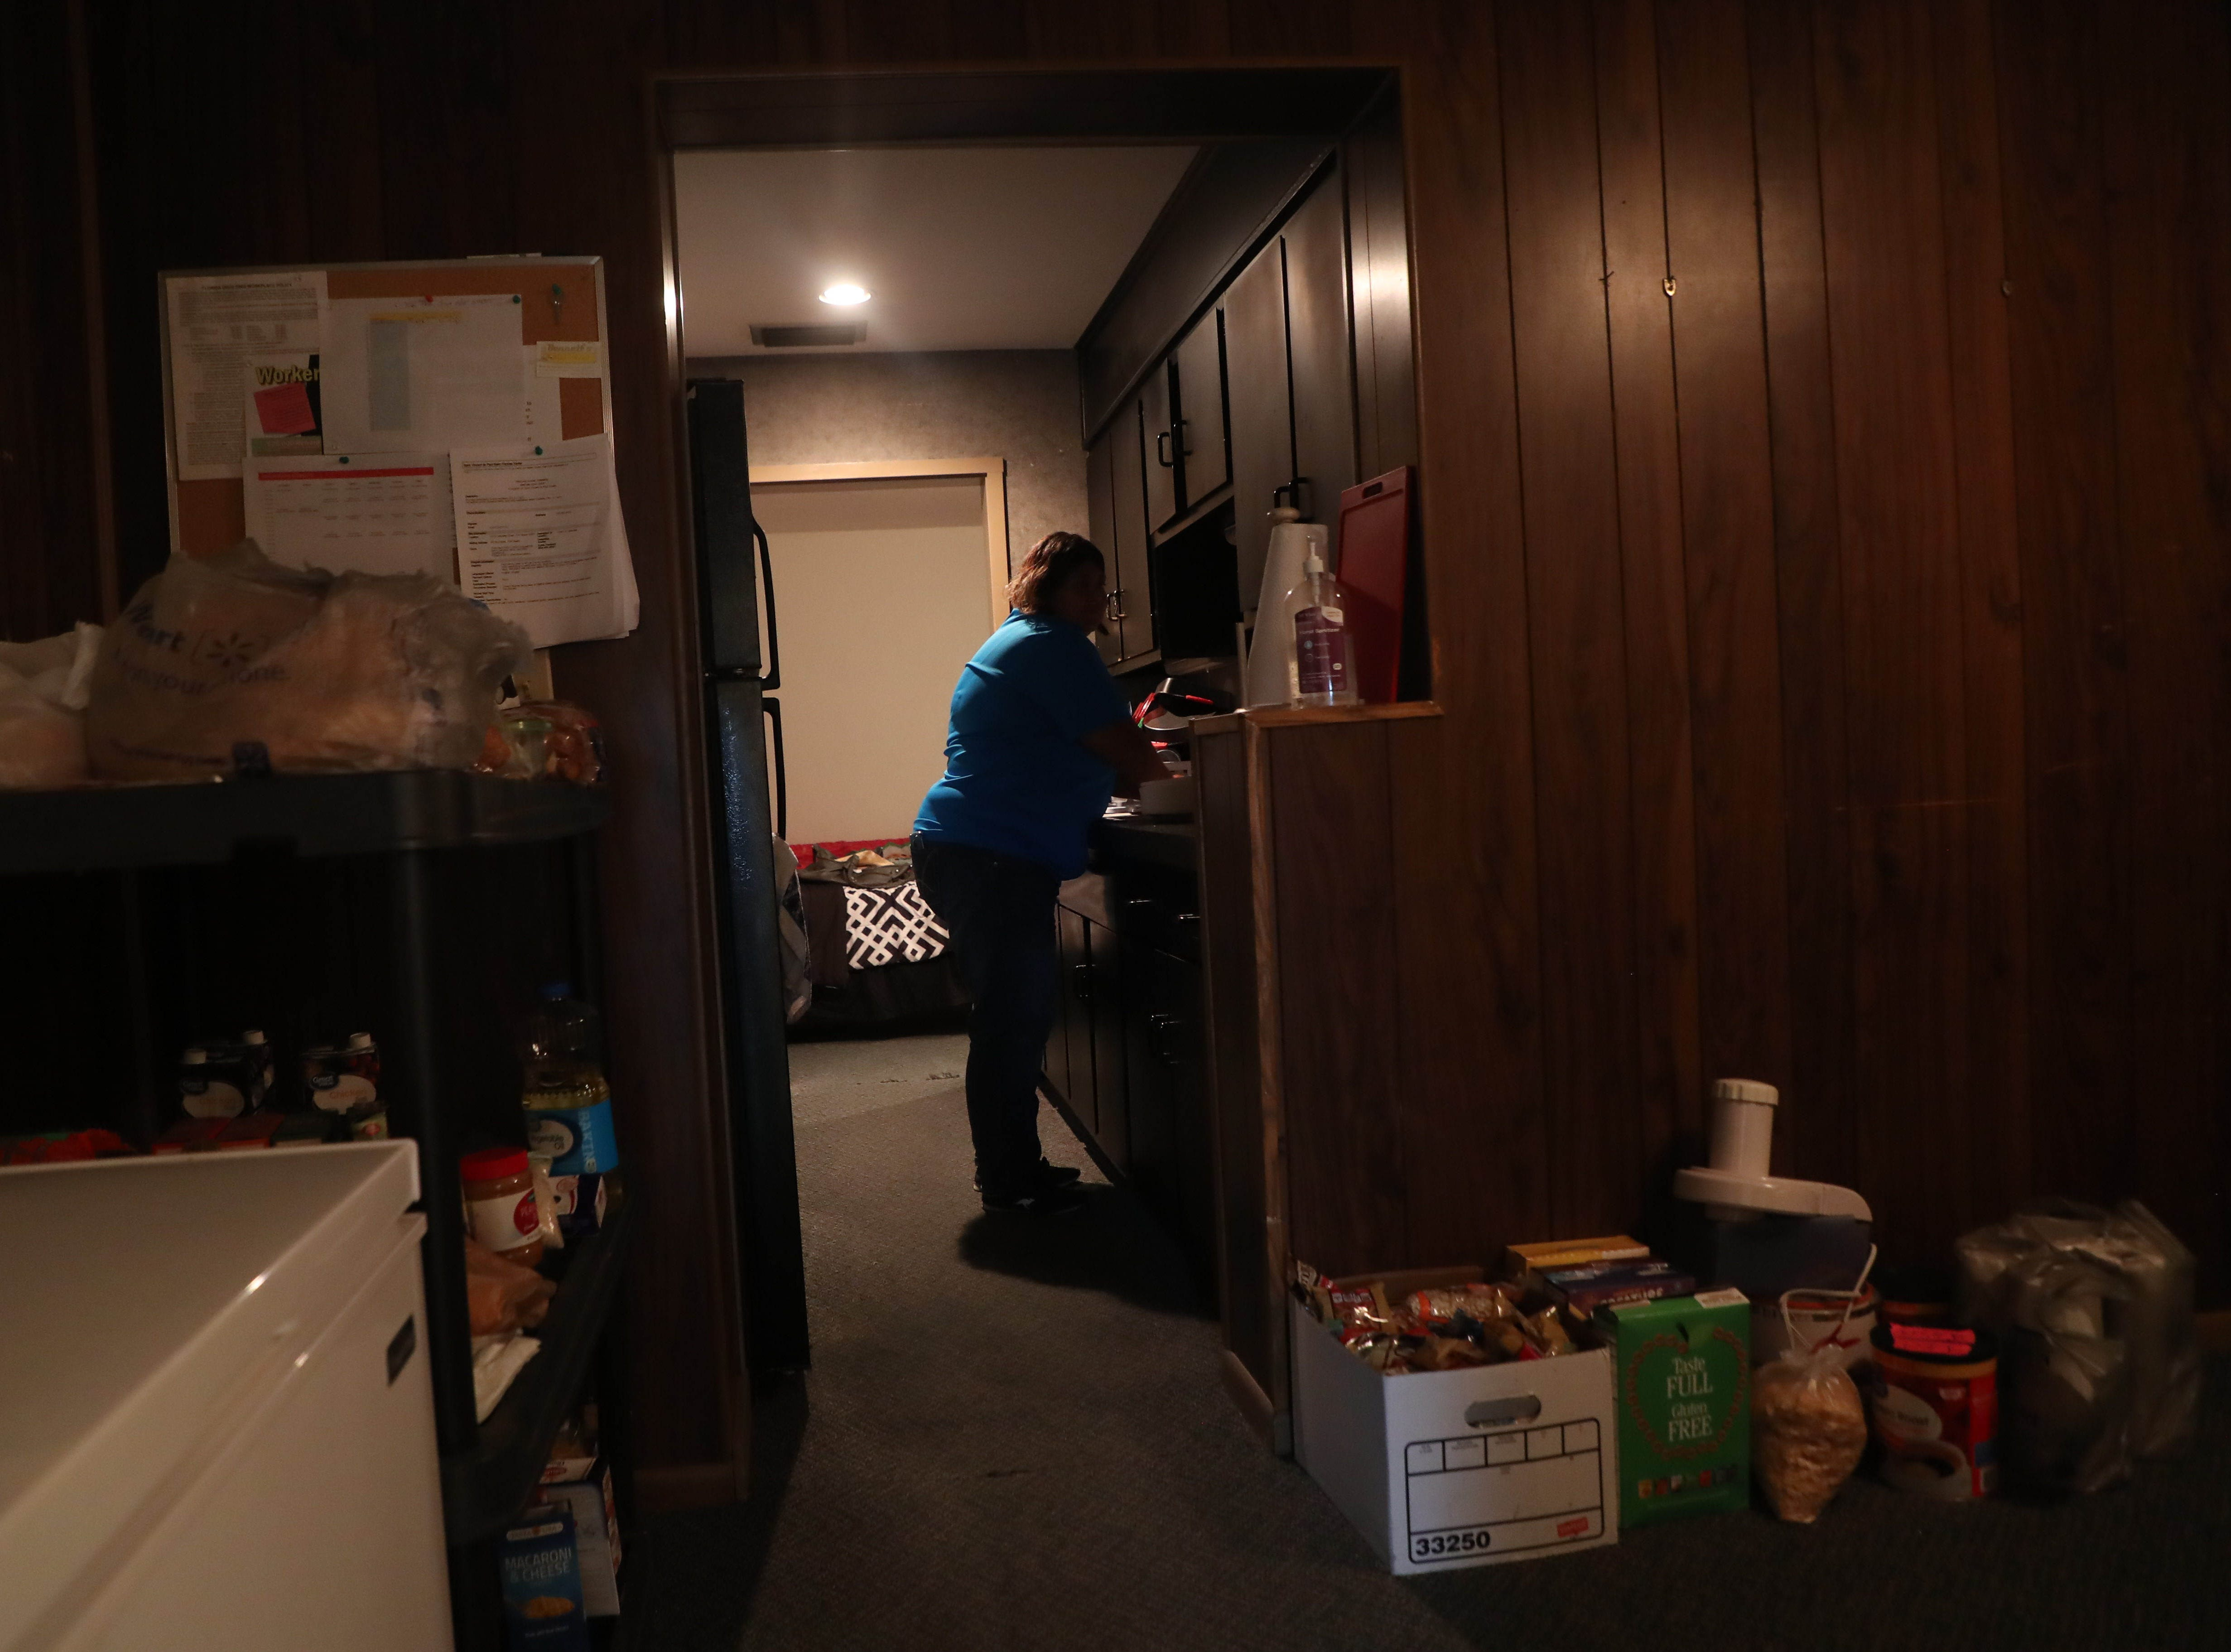 A peek inside Recovering Lives sober home in Fort Myers. Recovering Lives is a home for those overcoming substance abuse addiction. Right now the home houses 9 women. That will expand in the near future.